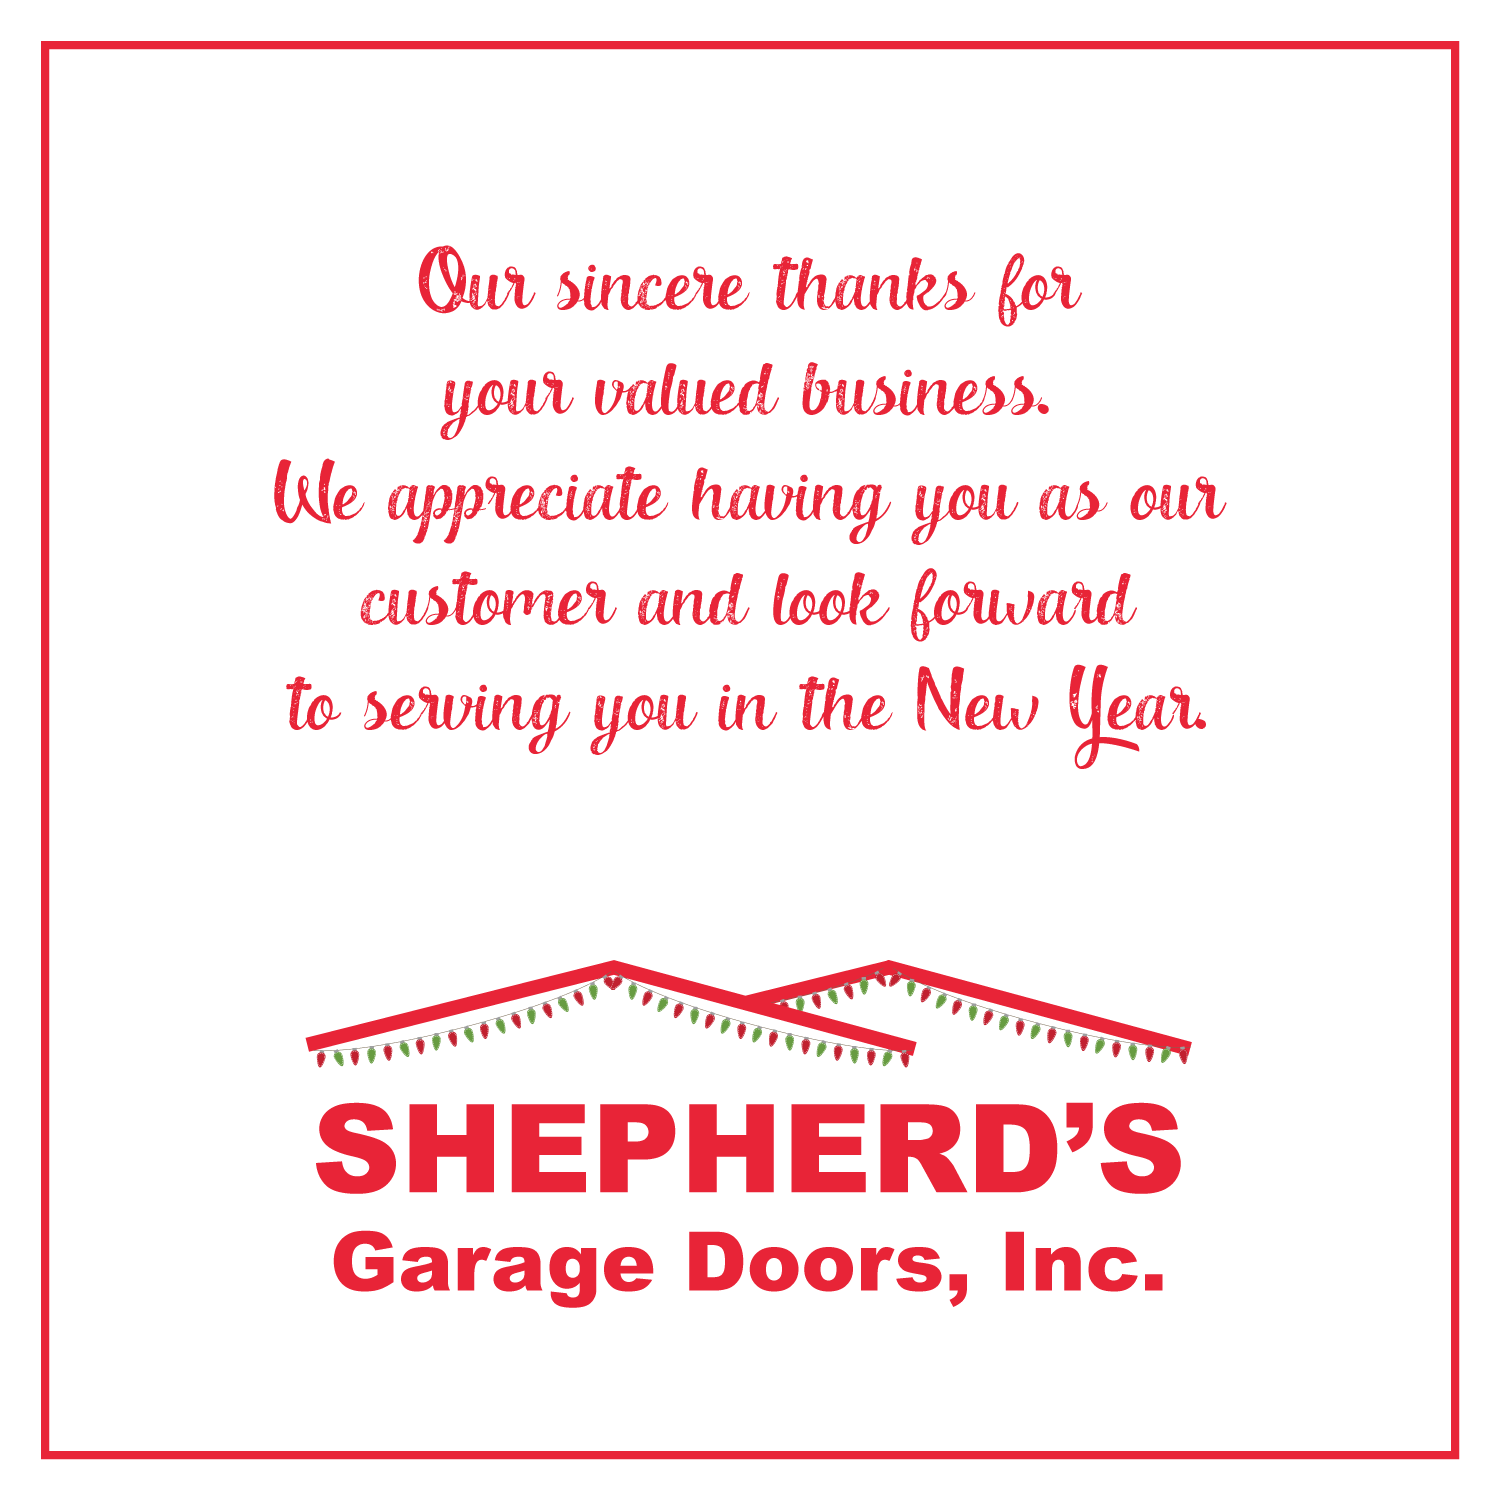 Shepherds-Garage-Doors-Holiday-Card-3.png